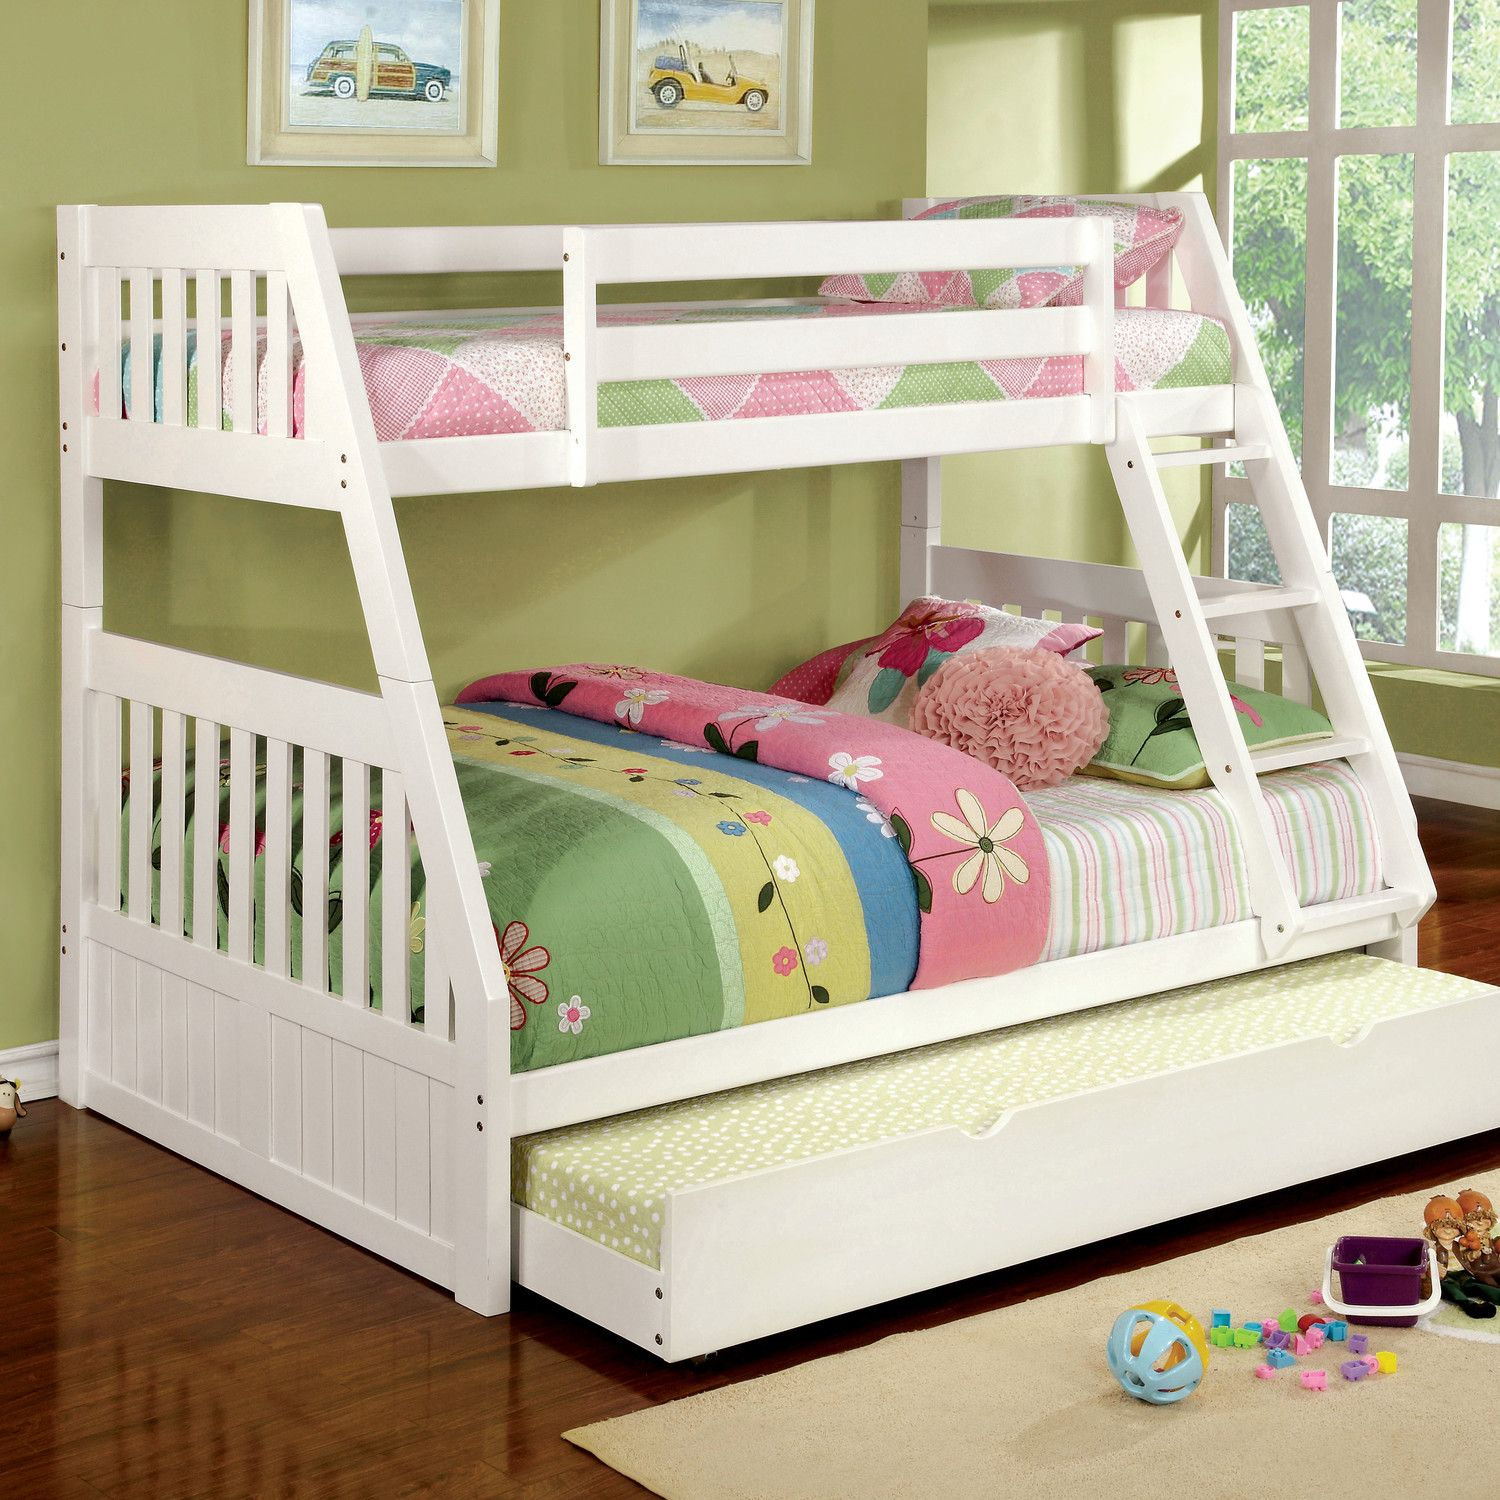 Loft bed plans for full size mattress  Hokku Designs Twin Trundle for Caitlyn Bunk Bed  Home  Pinterest